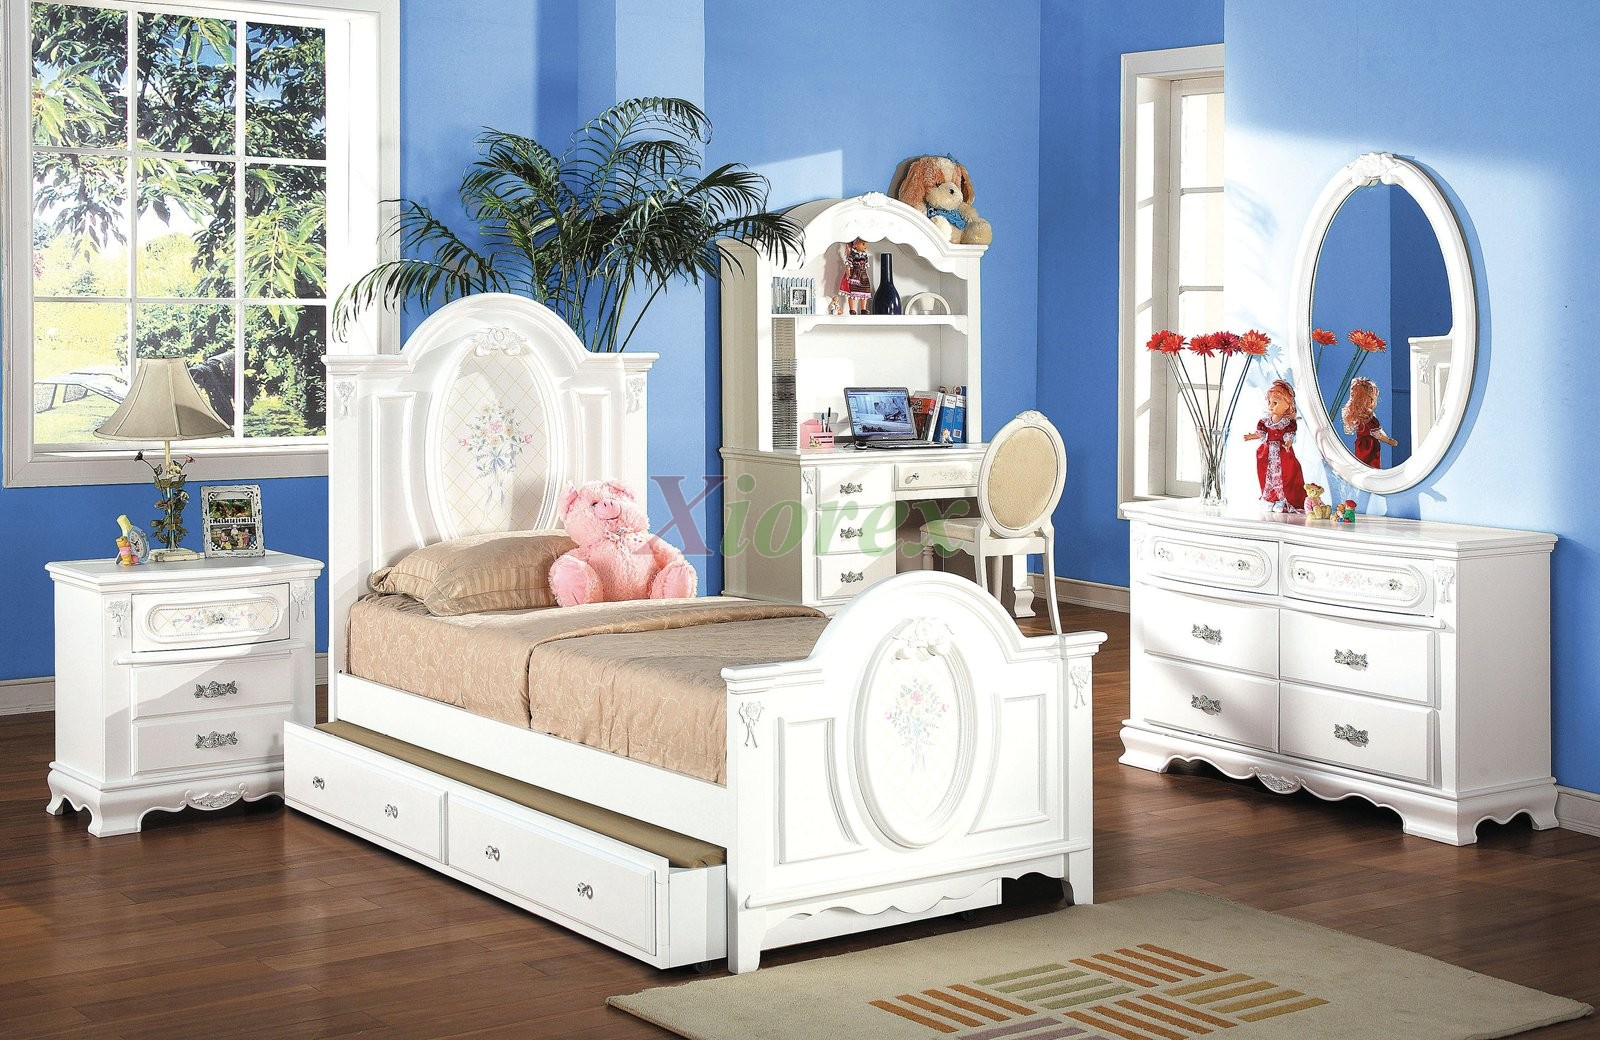 Exceptional Kids Bedroom Furniture Set With Trundle Bed And Hutch 174 | Xiorex